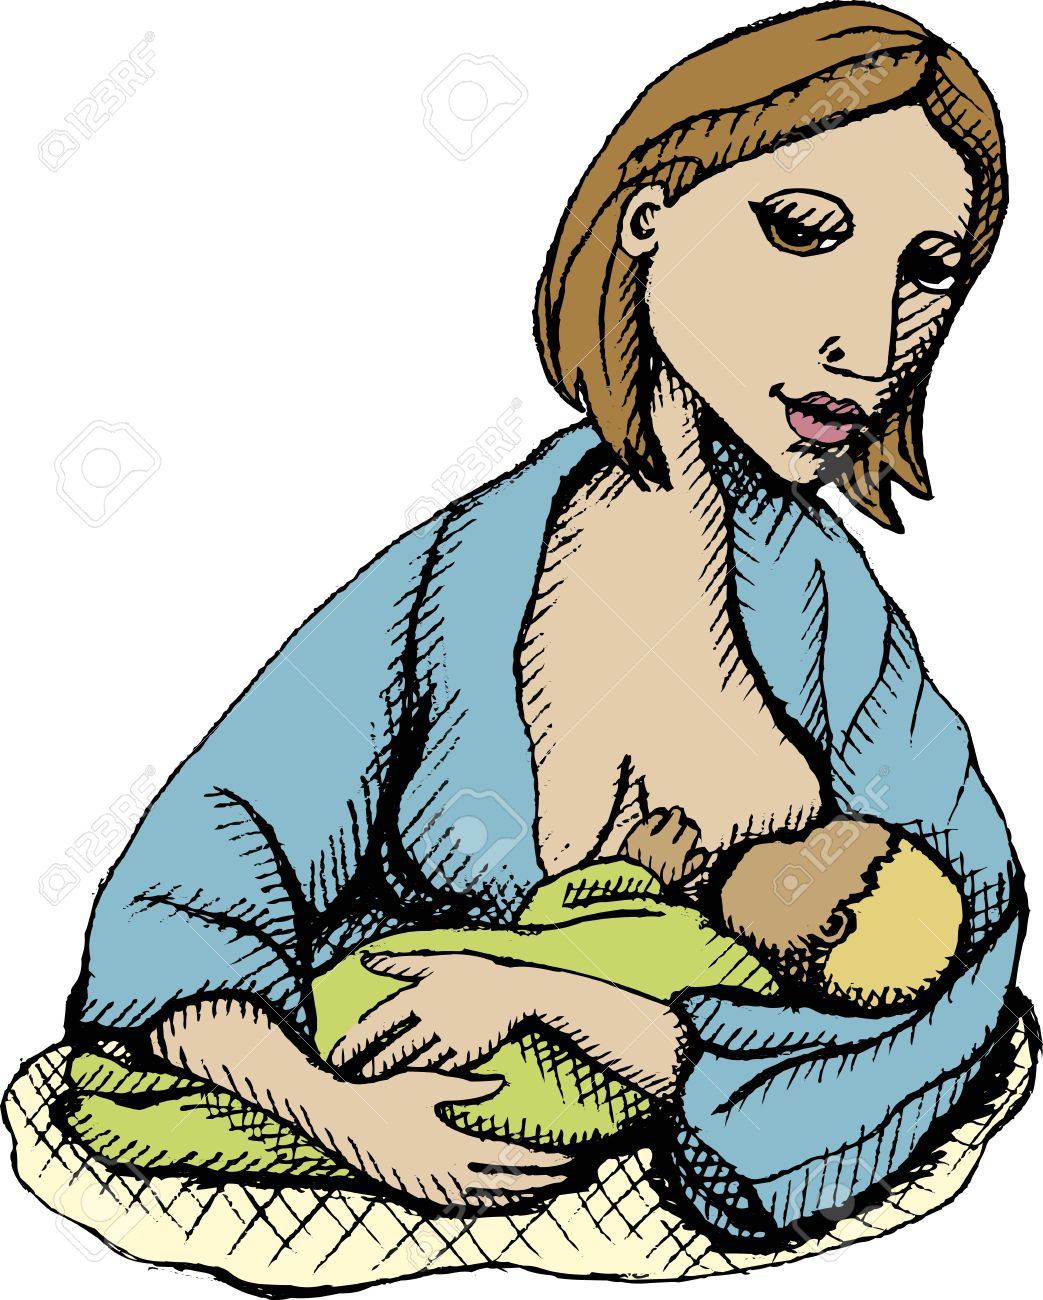 Nursing mother clipart.